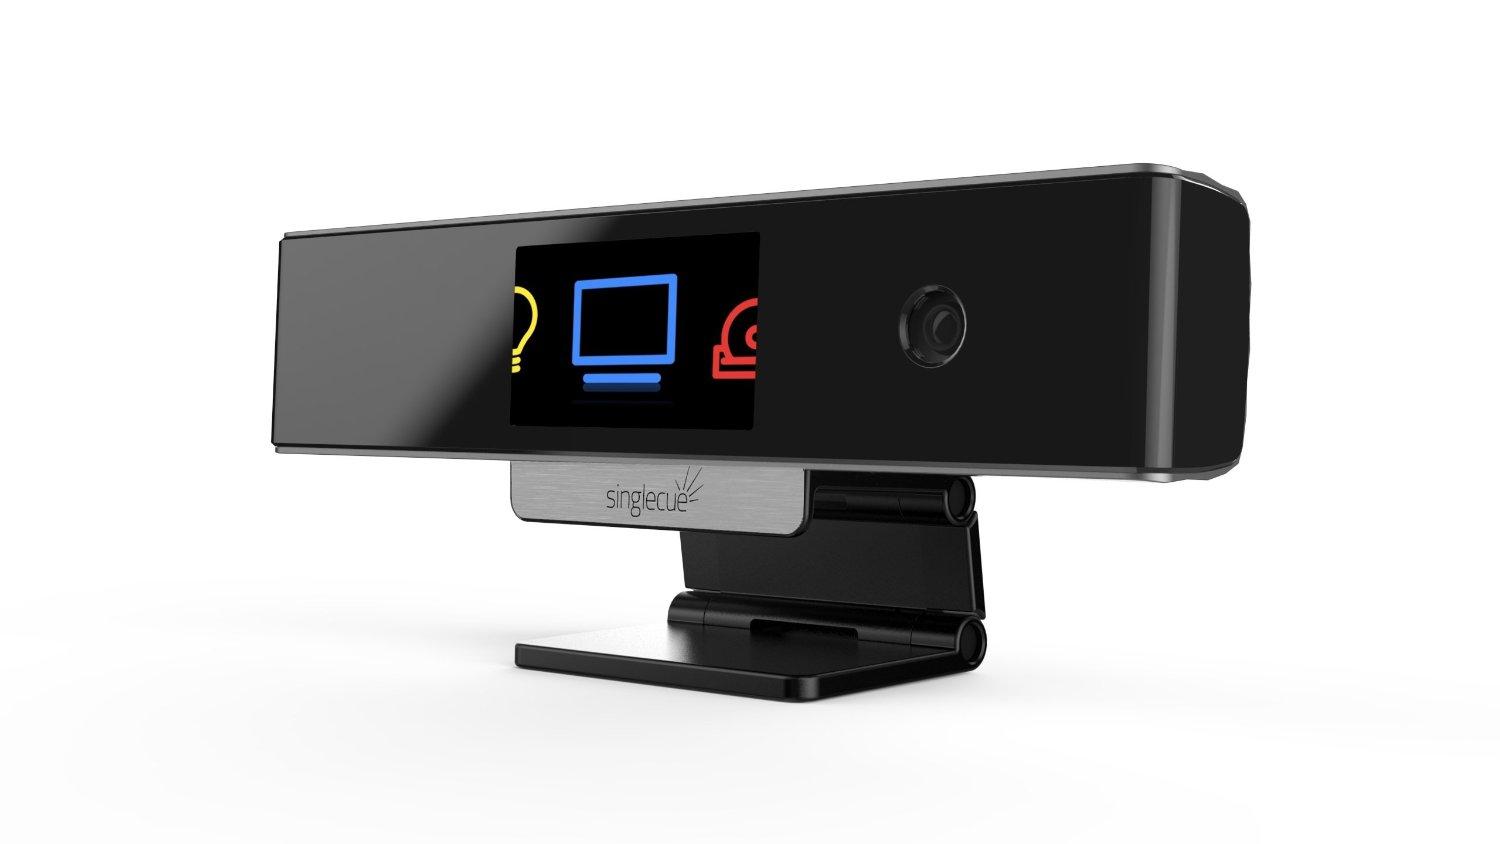 singlecue Gesture Control for your TV and Entertainment Devices - Kashy.co